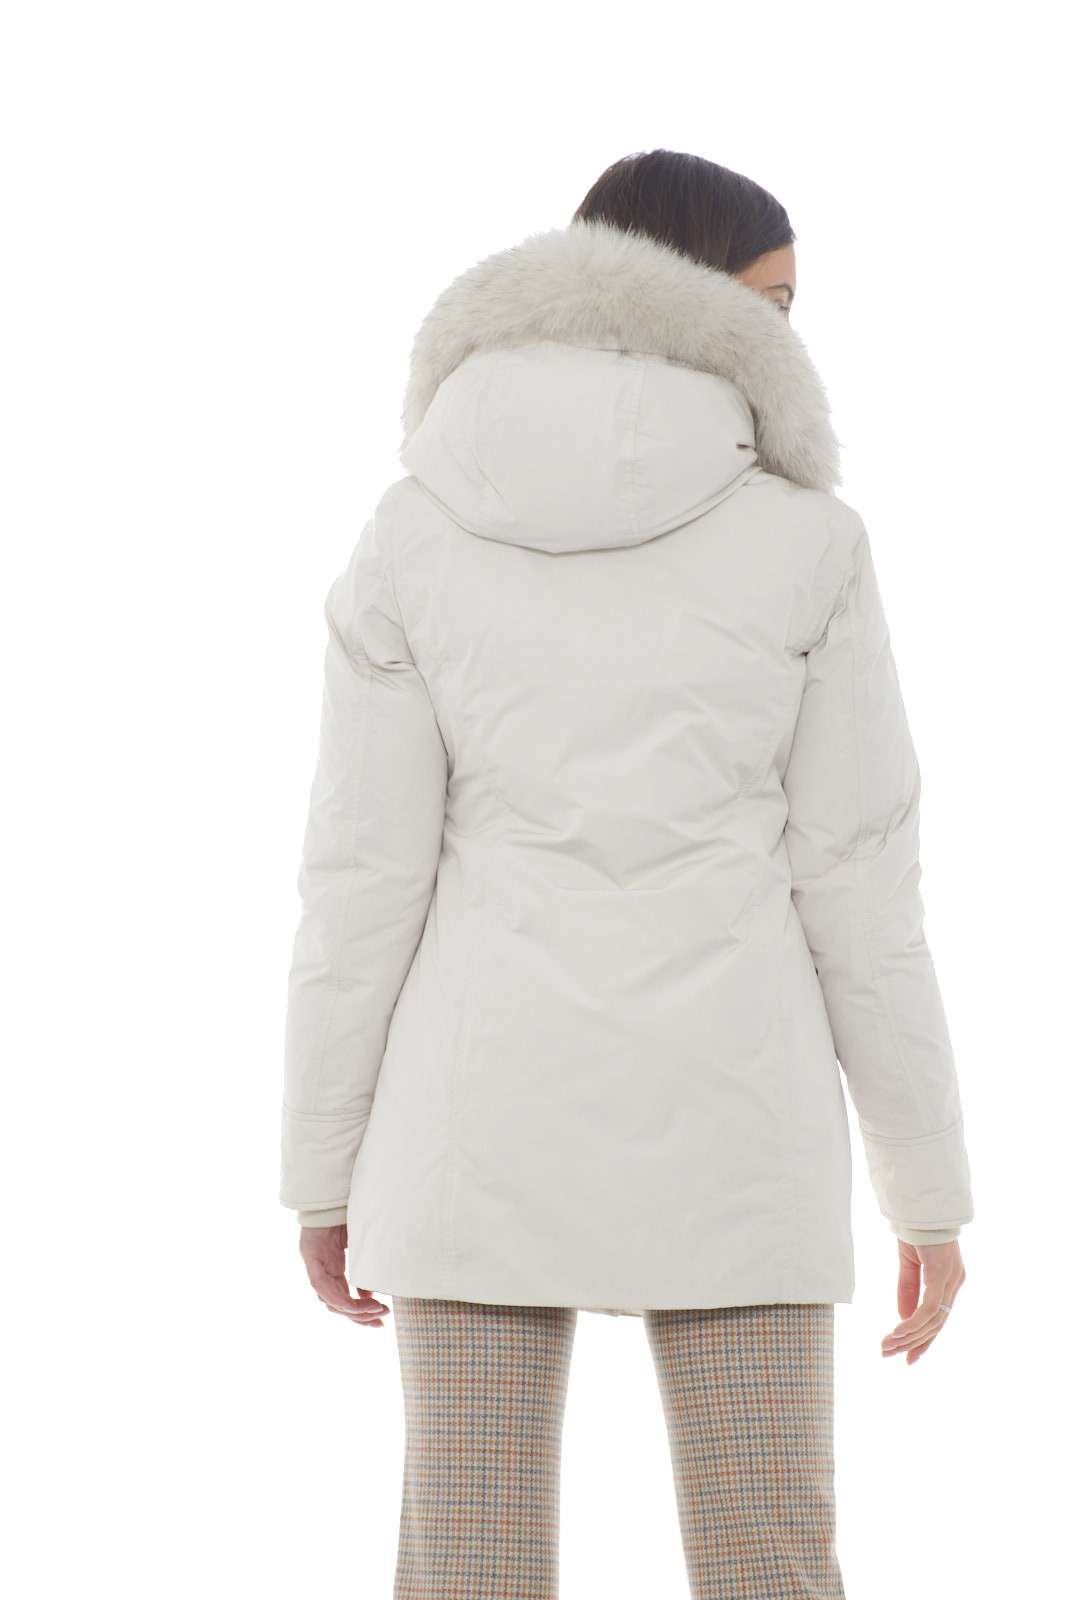 https://www.parmax.com/media/catalog/product/a/i/AI-outlet_parmax-parka-donna-Woolrich-wwcps2834-C.jpg